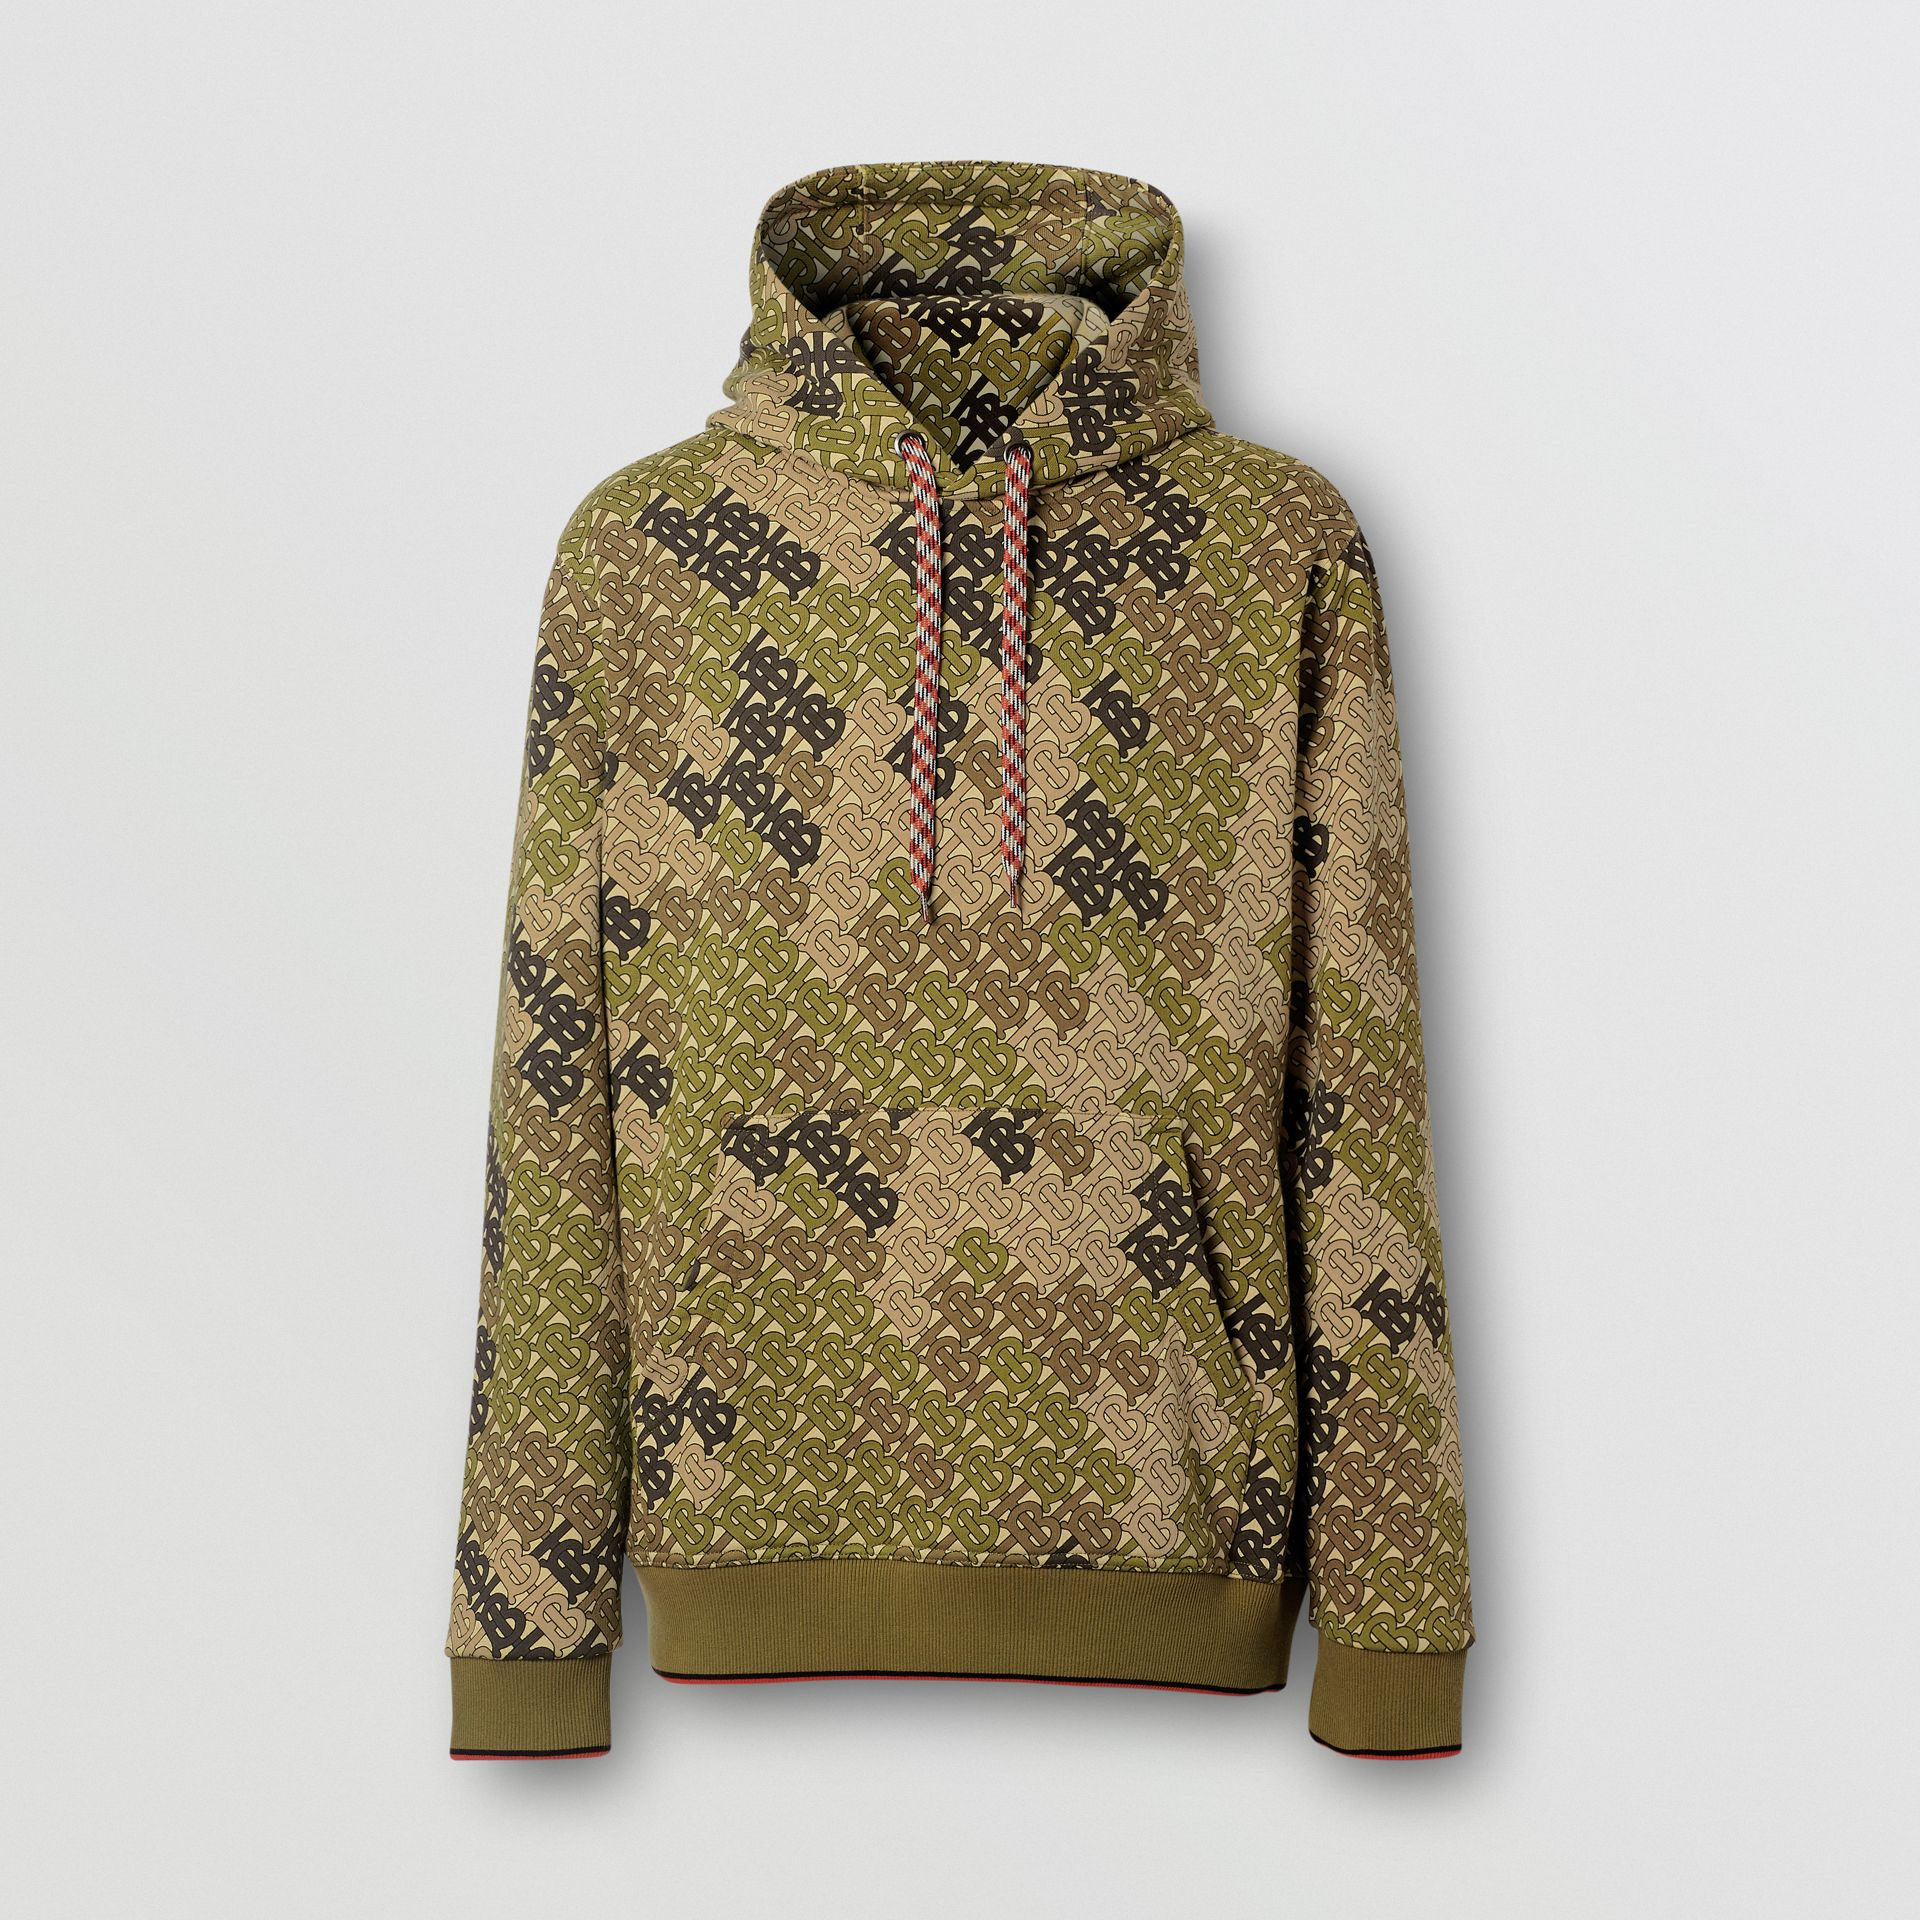 Monogram Print Cotton Hoodie in Khaki Green - Men | Burberry - gallery image 3